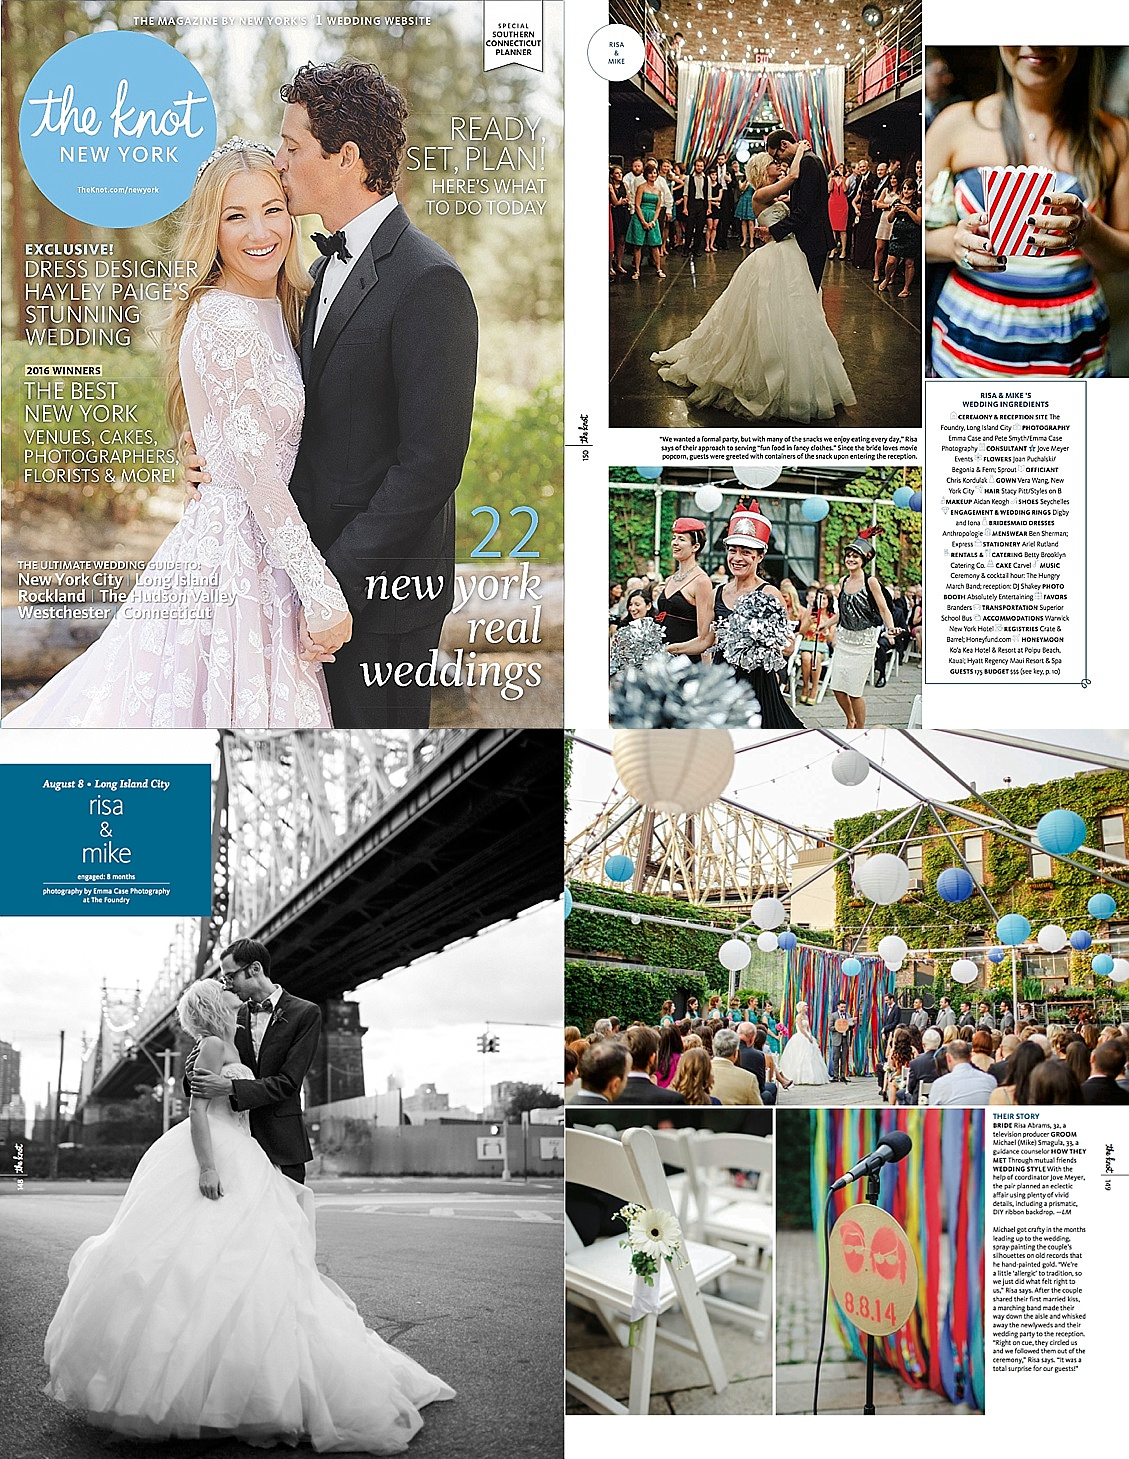 jove meyer events featured in the knot for a foundry wedding.jpg